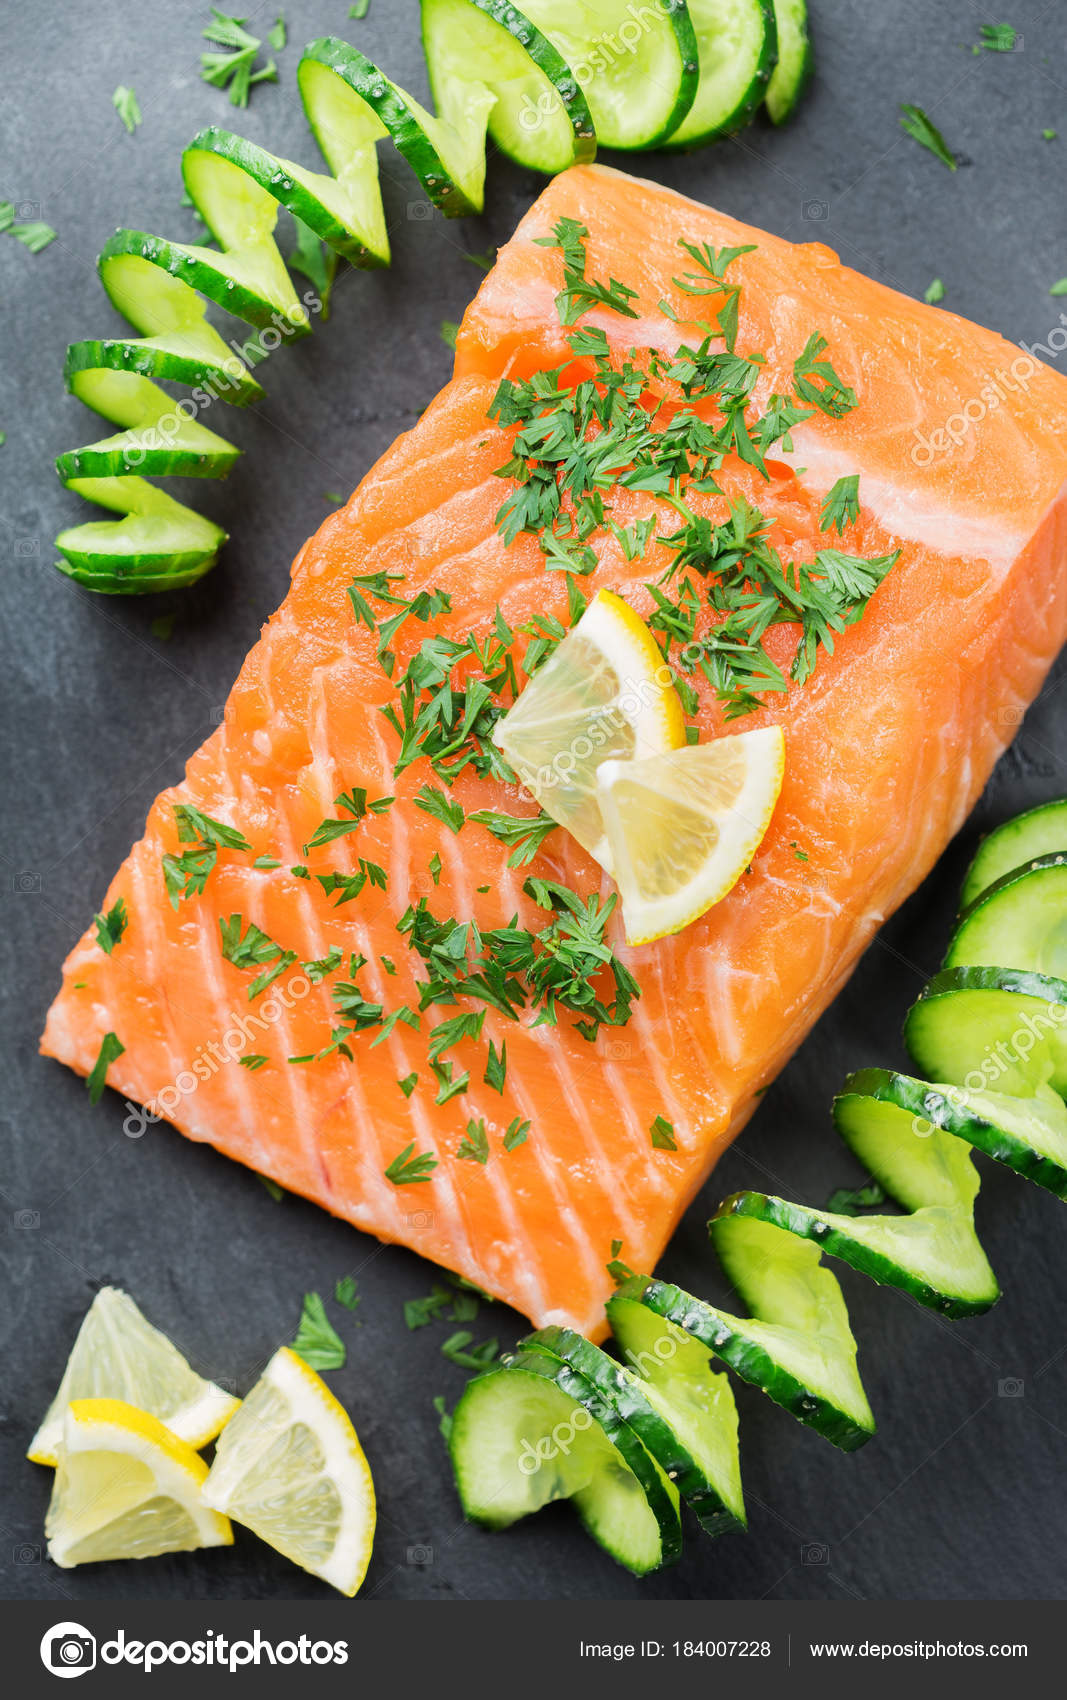 Raw Salmon Fillet For Cooking Japanese Food Stock Photo C Aamulya